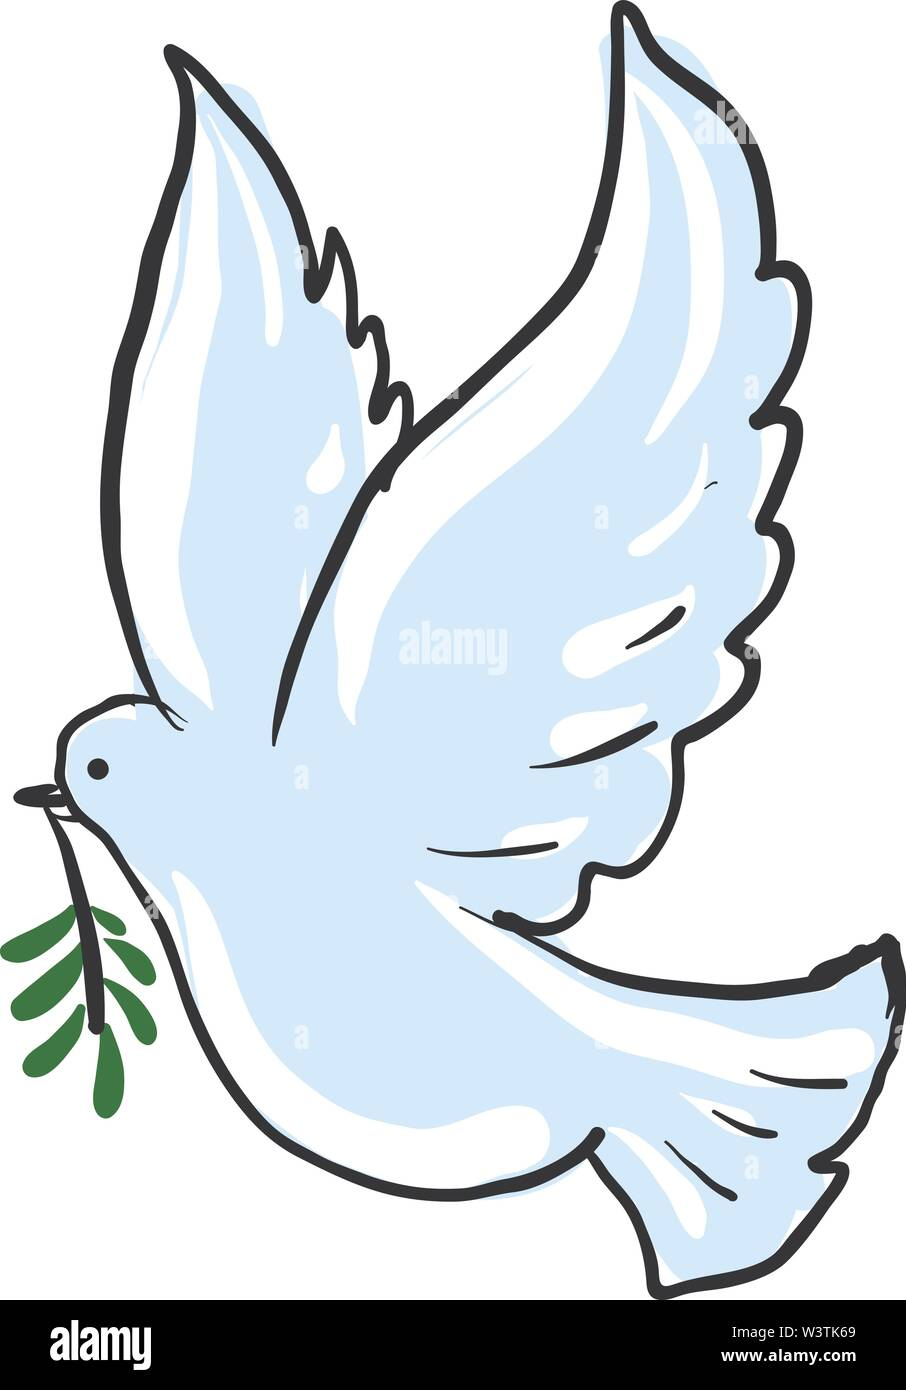 Dove Carrying Olive Branch Illustration Vector On White Background Stock Vector Image Art Alamy